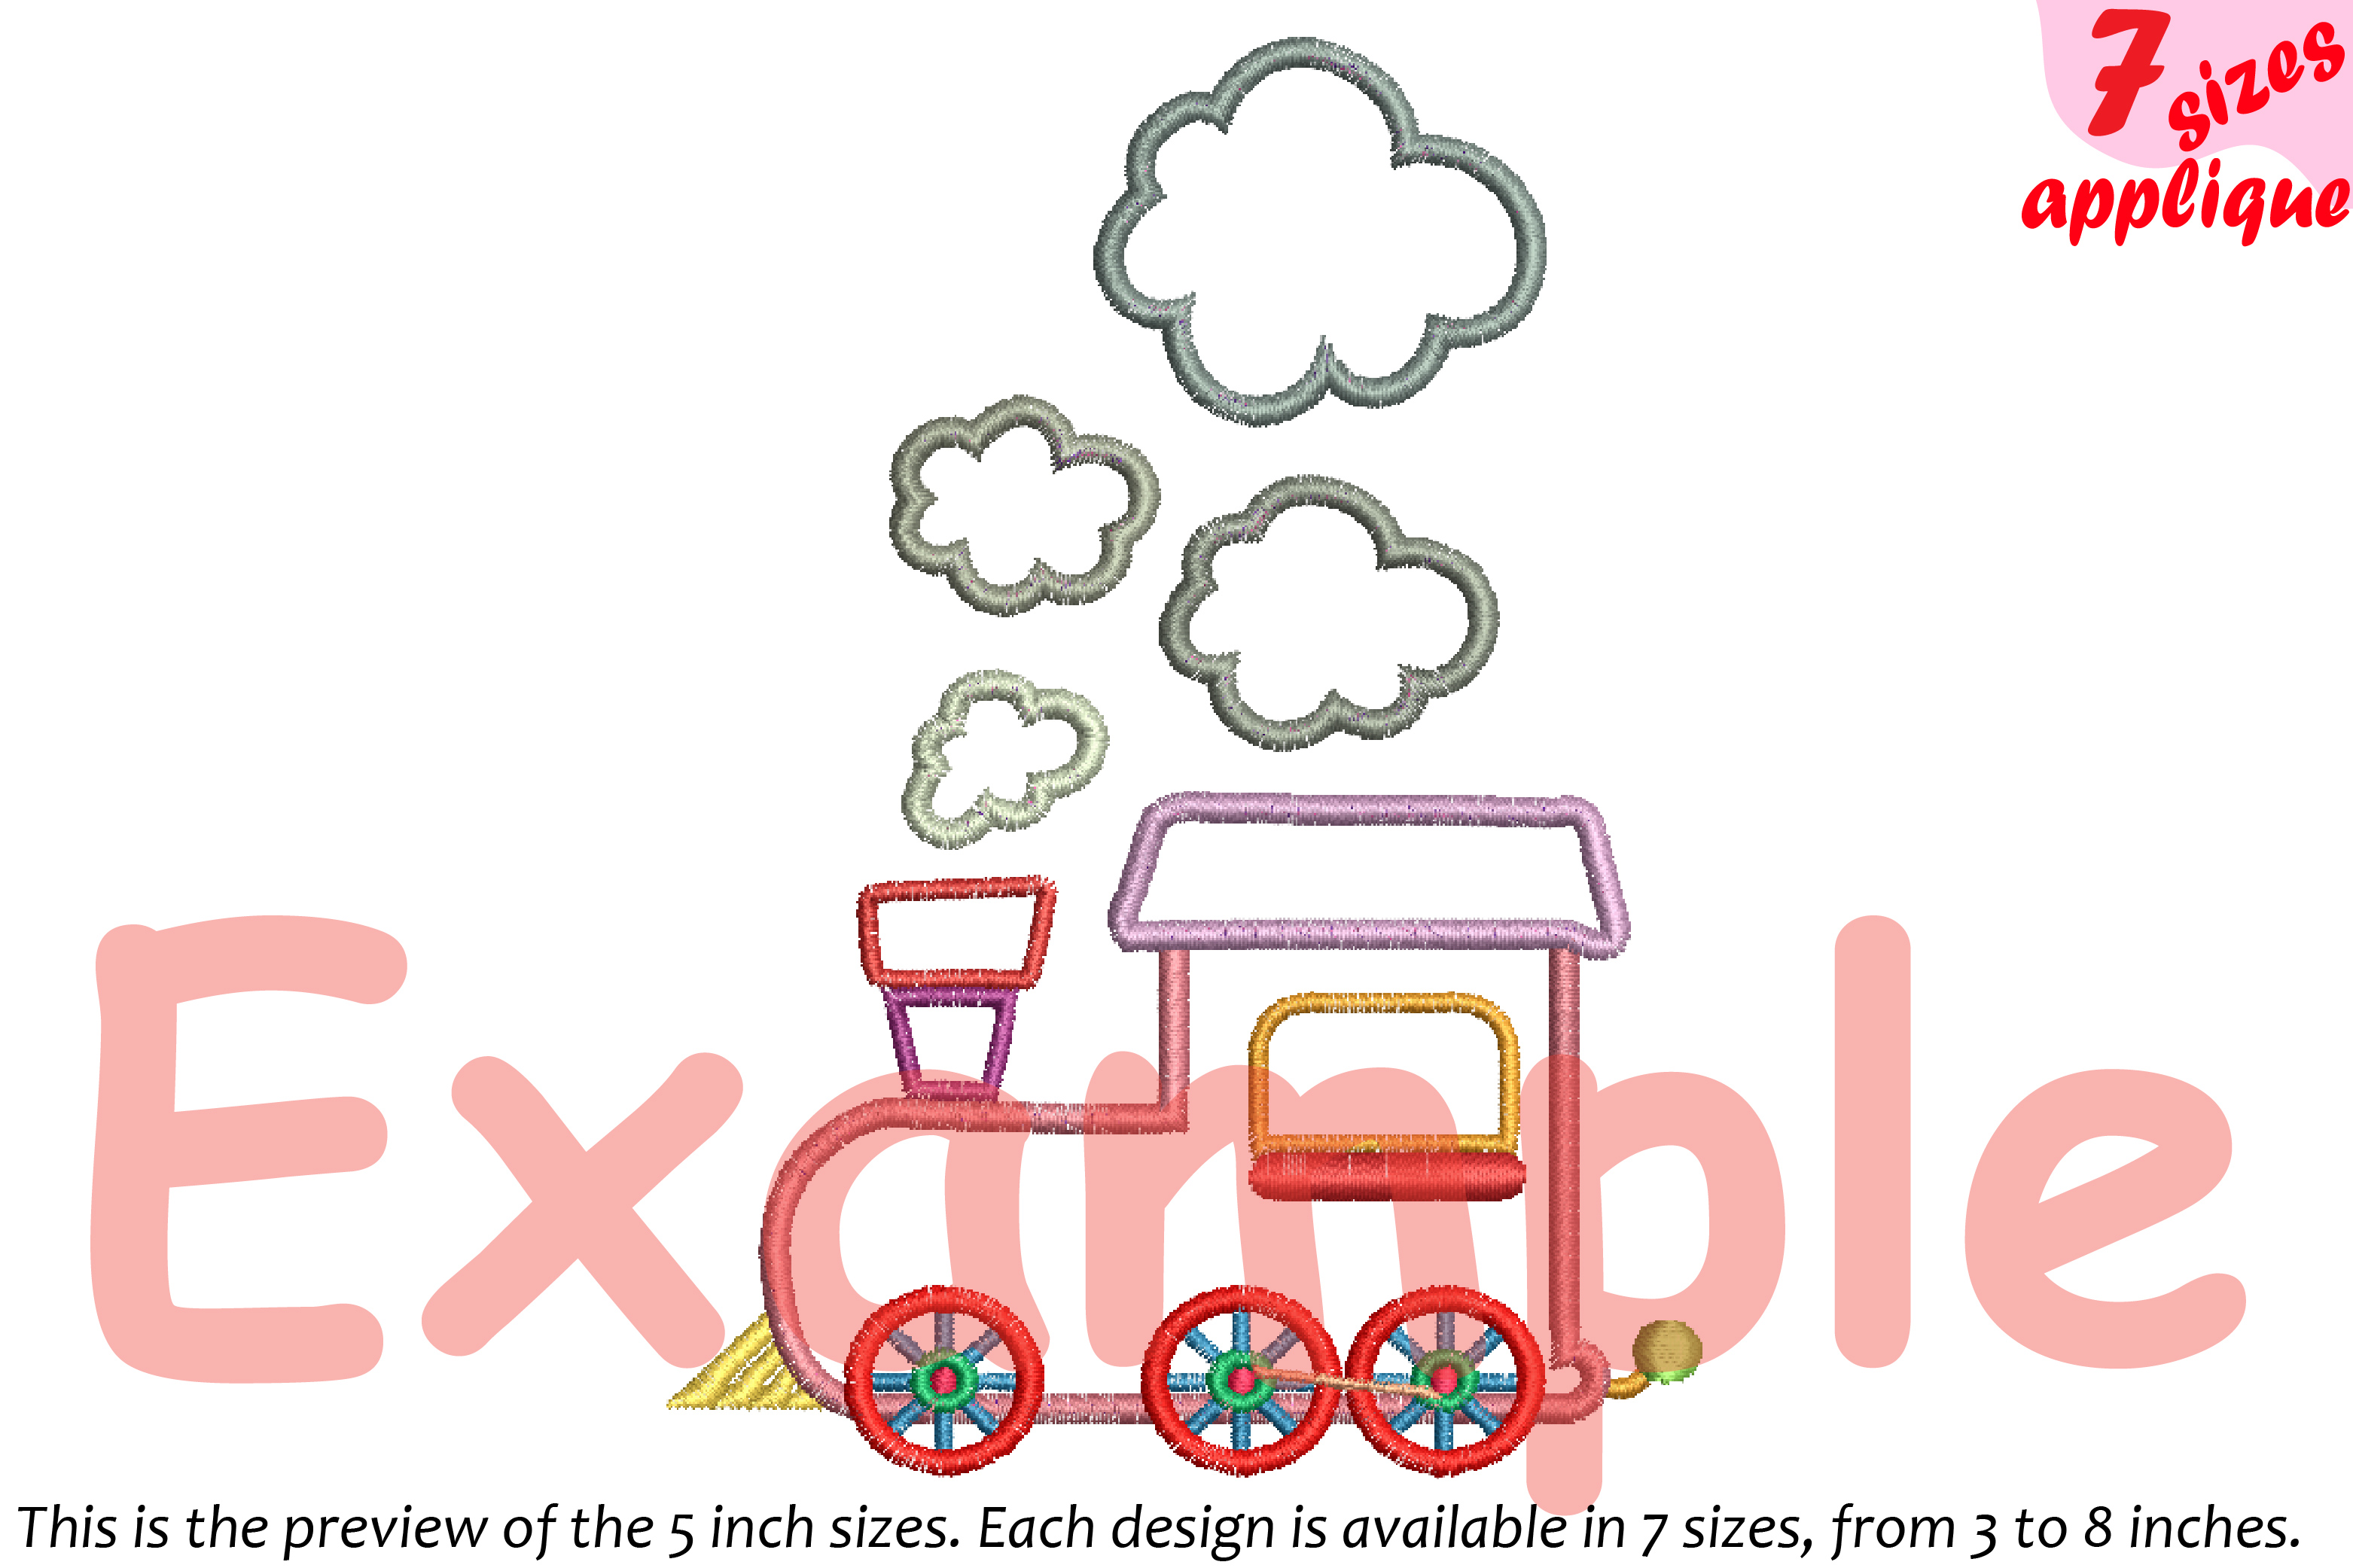 Train Toy Applique Designs for Embroidery Machine Instant Download Commercial Use symbol outline cartoon baby boy Birthday toys 20a example image 2